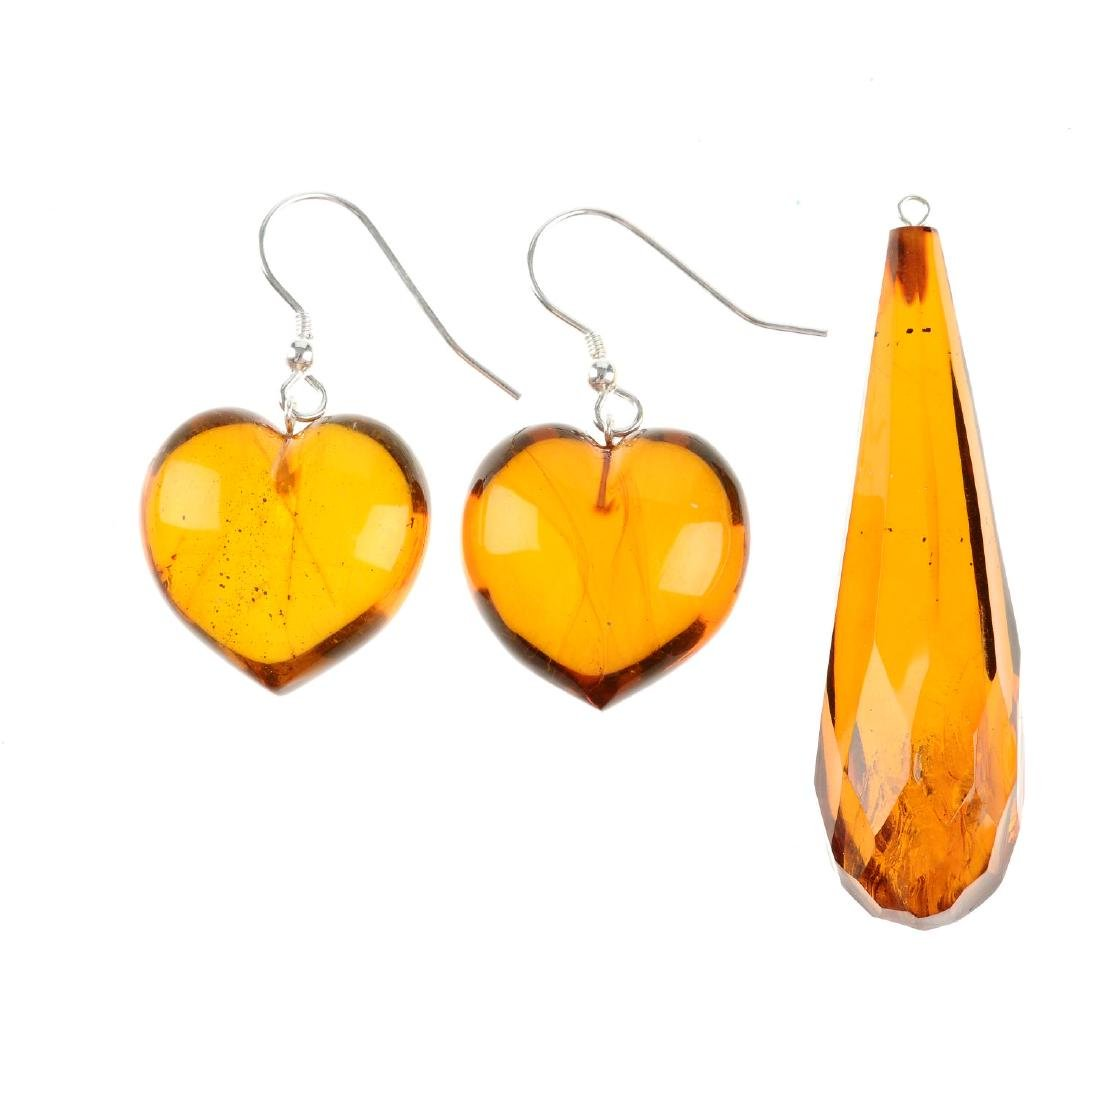 Two pairs of natural Dominican Republic amber ear